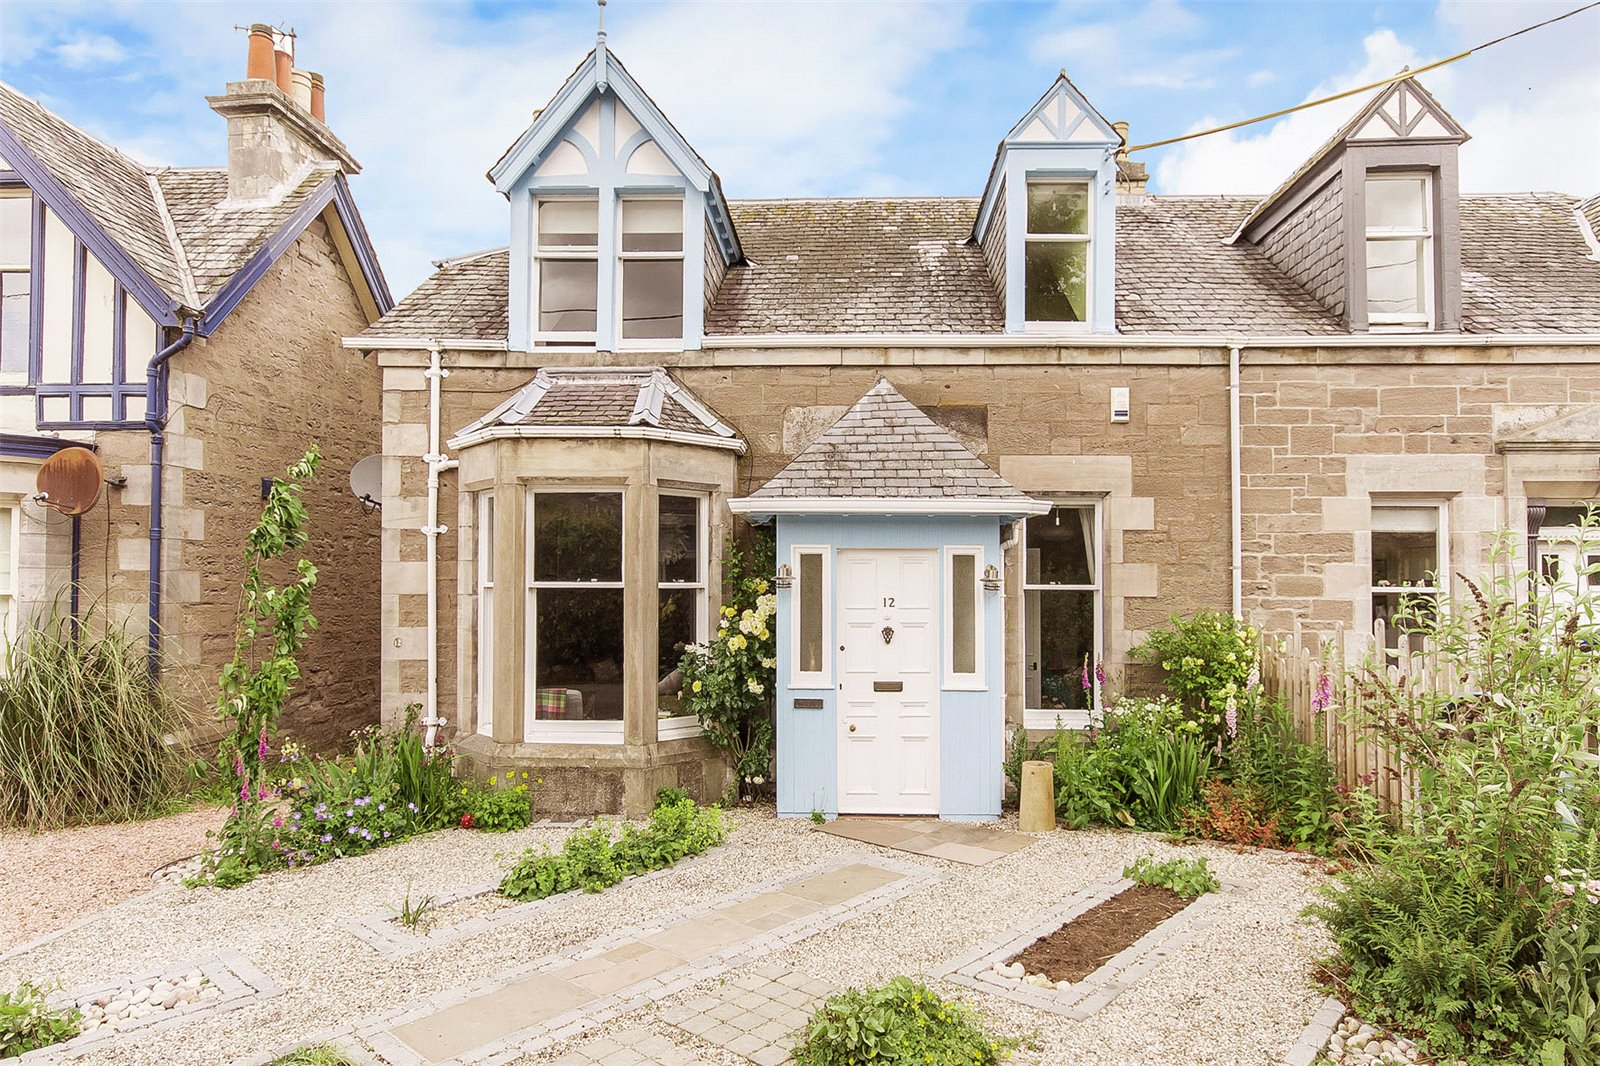 Our latest properties for sale and to let (25th June 2018)